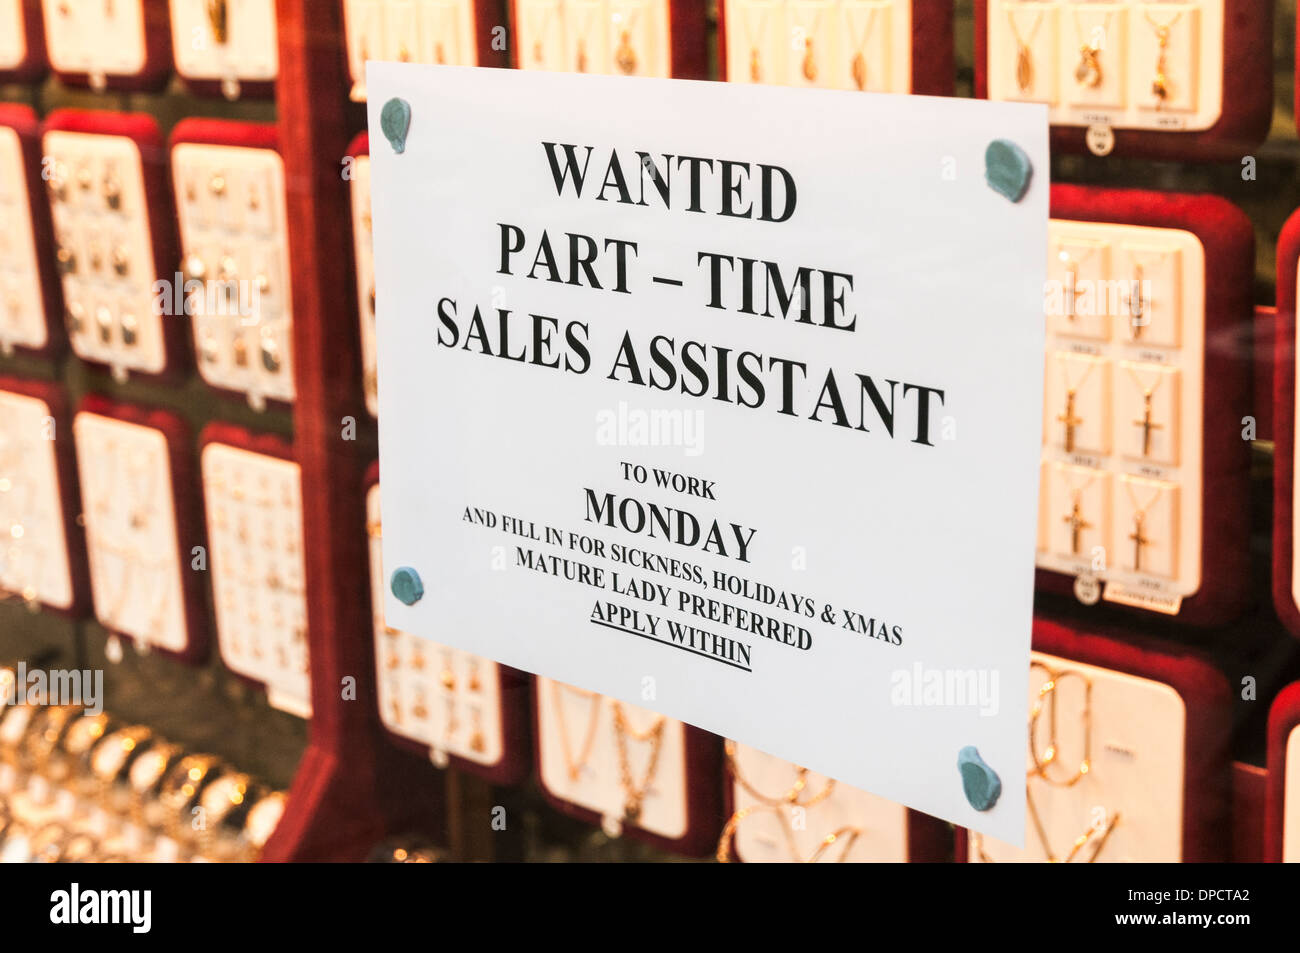 job advertisement in a jewellers shop window advertising for a job advertisement in a jewellers shop window advertising for a part time s assistant